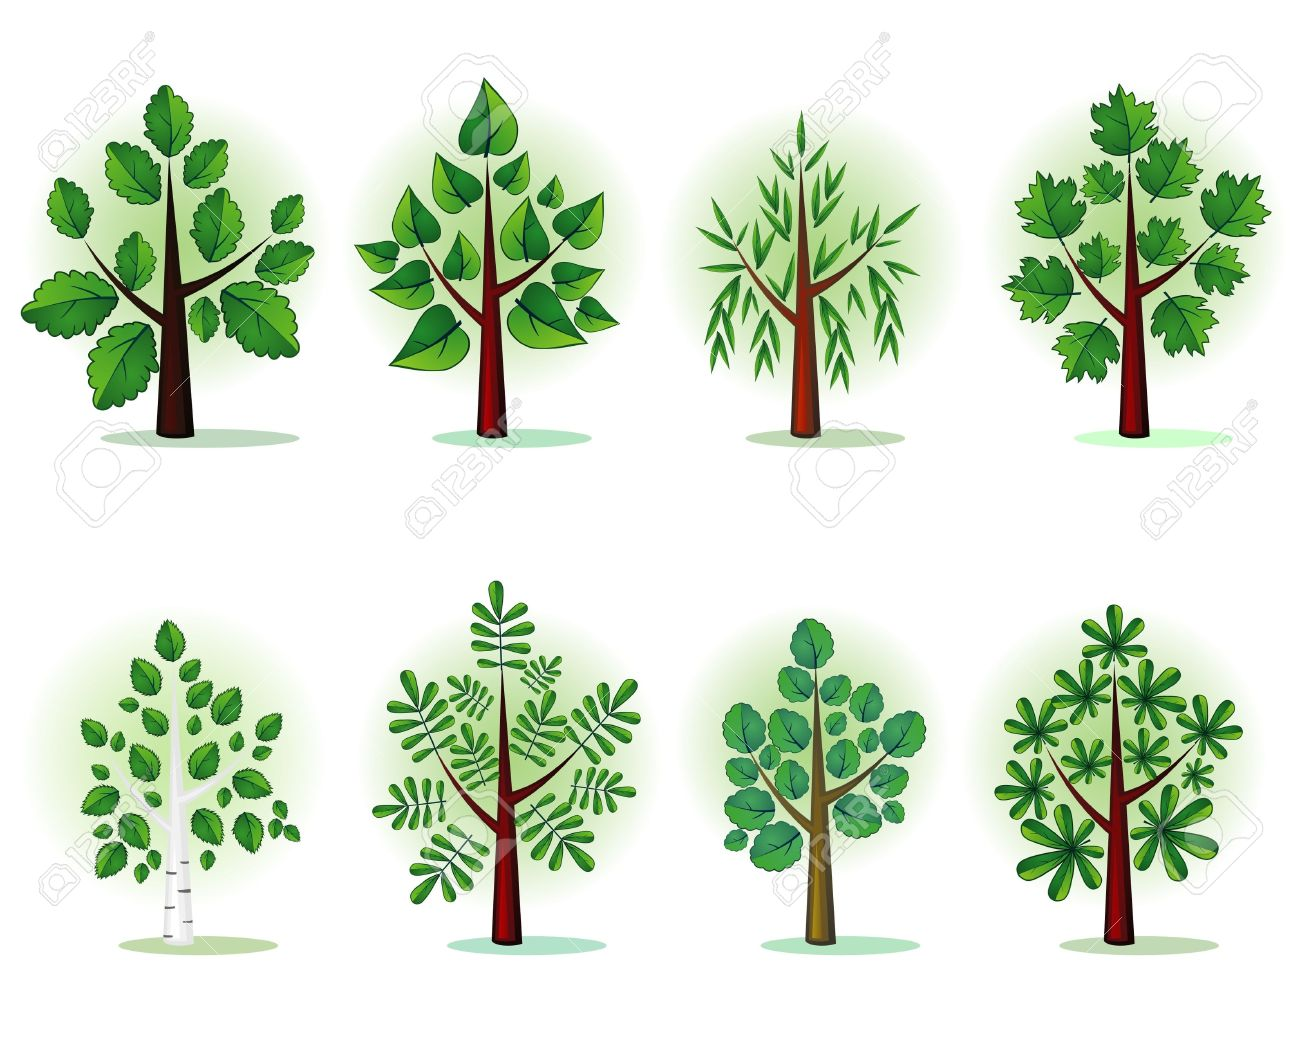 Stylized Forest Trees Royalty Free Cliparts, Vectors, And Stock.